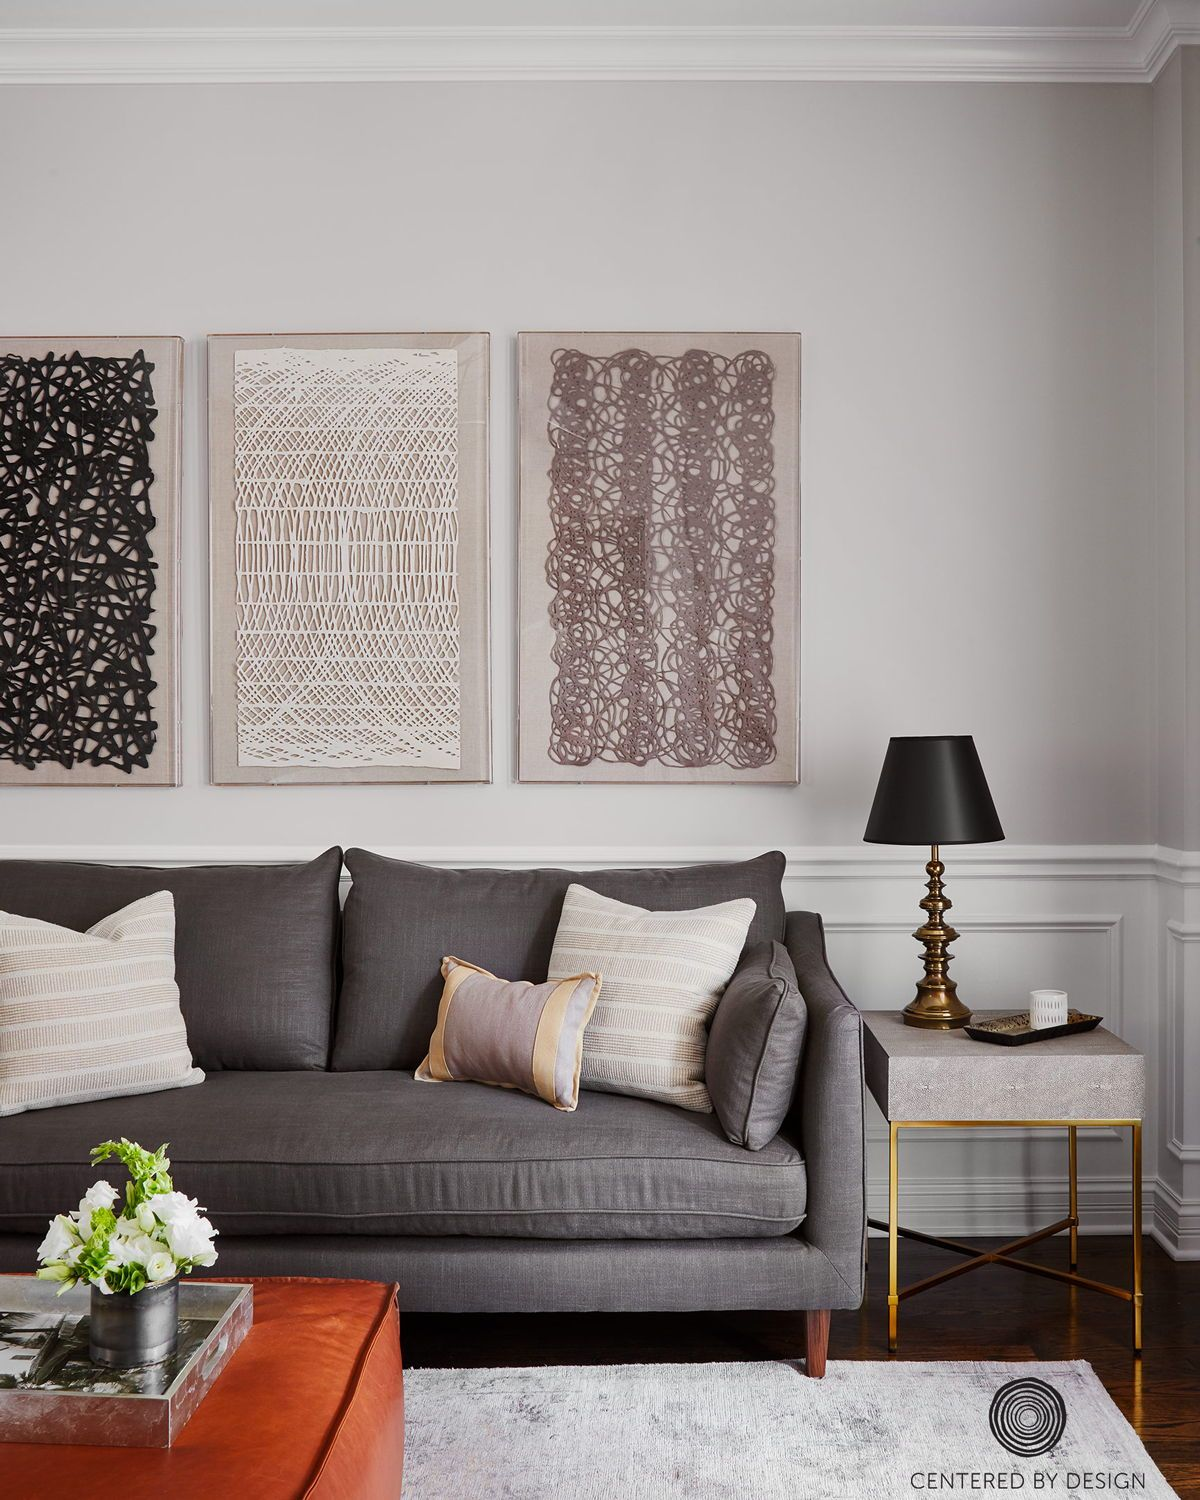 This Peaceful Living Room By Claire Staszak Of Centered By Design